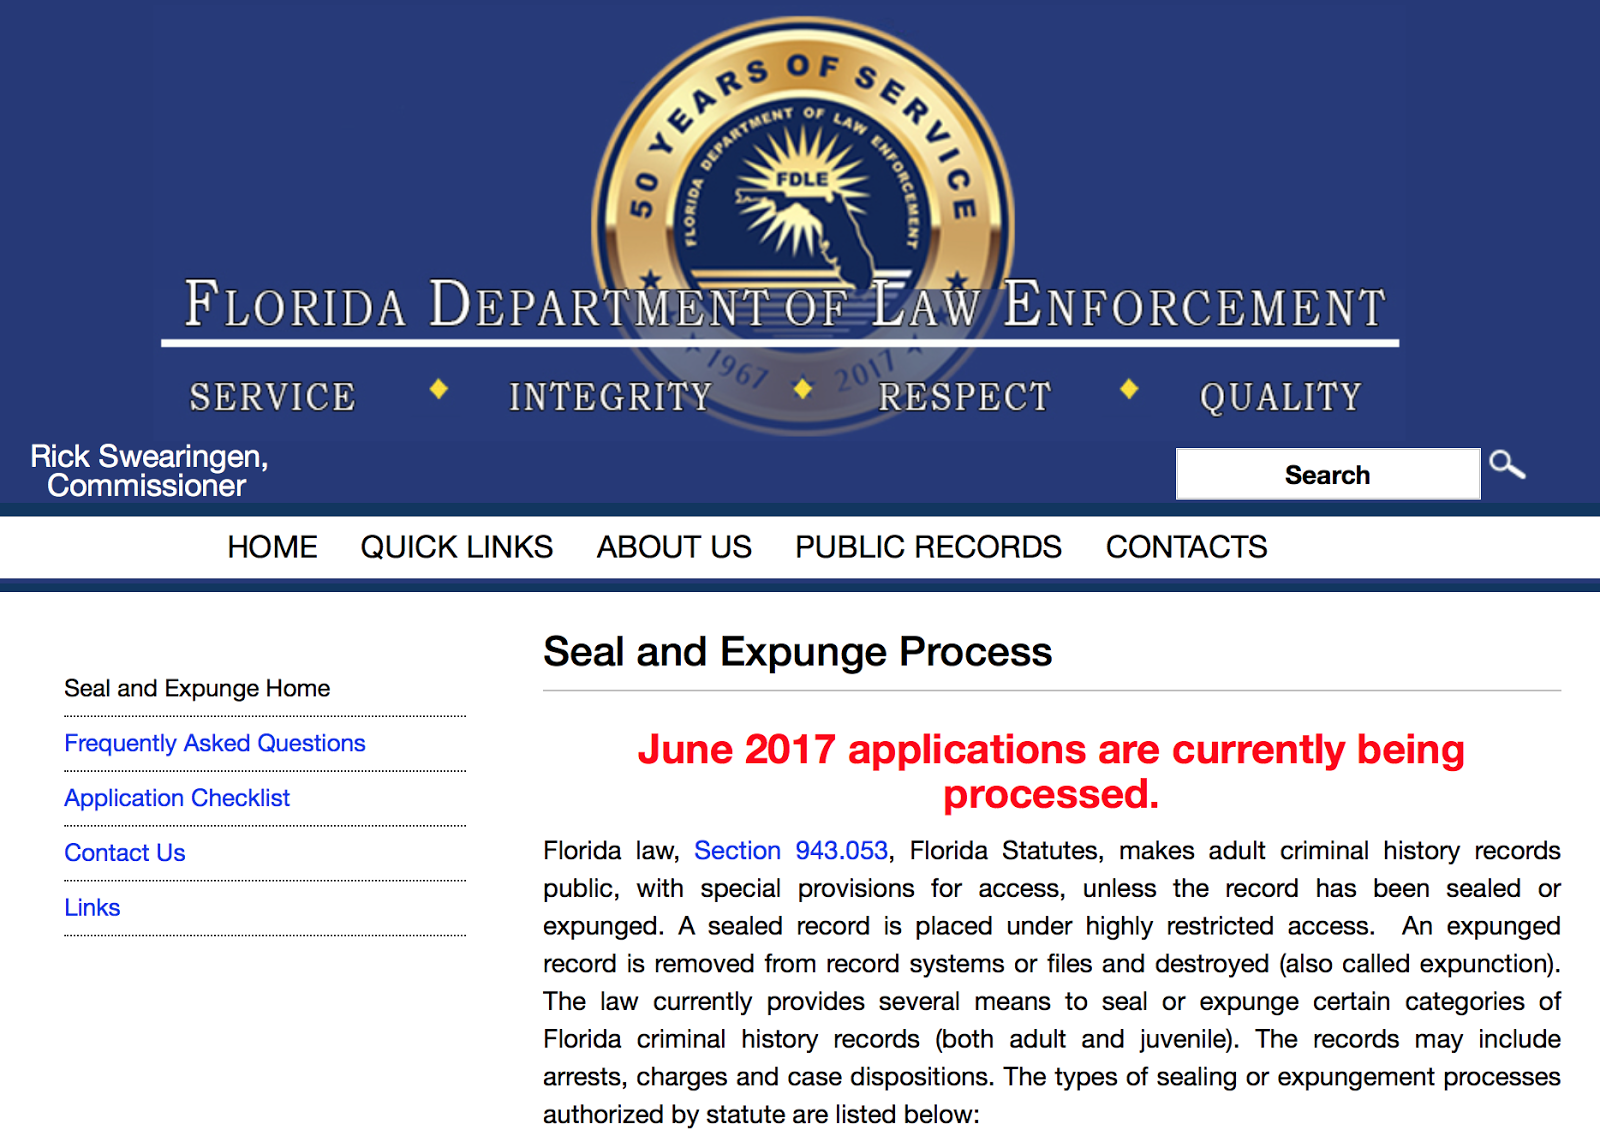 Tampa criminal law blog how long does it take to seal or expunge a you can also check the status of the application by checking fdles website to confirm the month being processed solutioingenieria Images